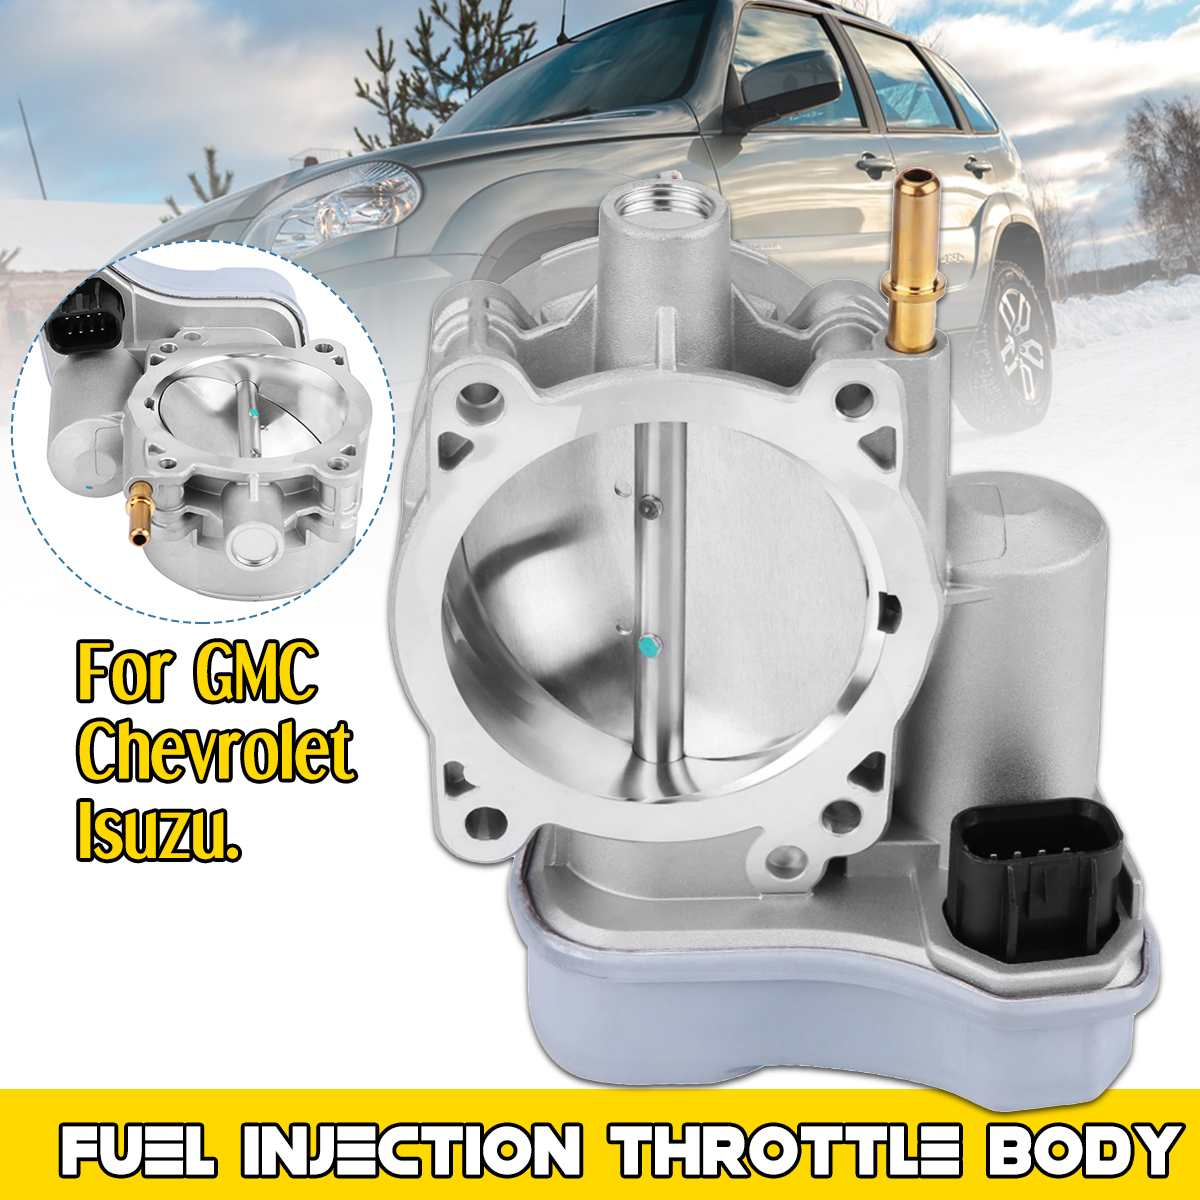 Fuel Injection Throttle Body Assembly 12568580 For GMC/Buick/Chevrolet/Isuzu Car Auto Replacement Parts Air Intake System